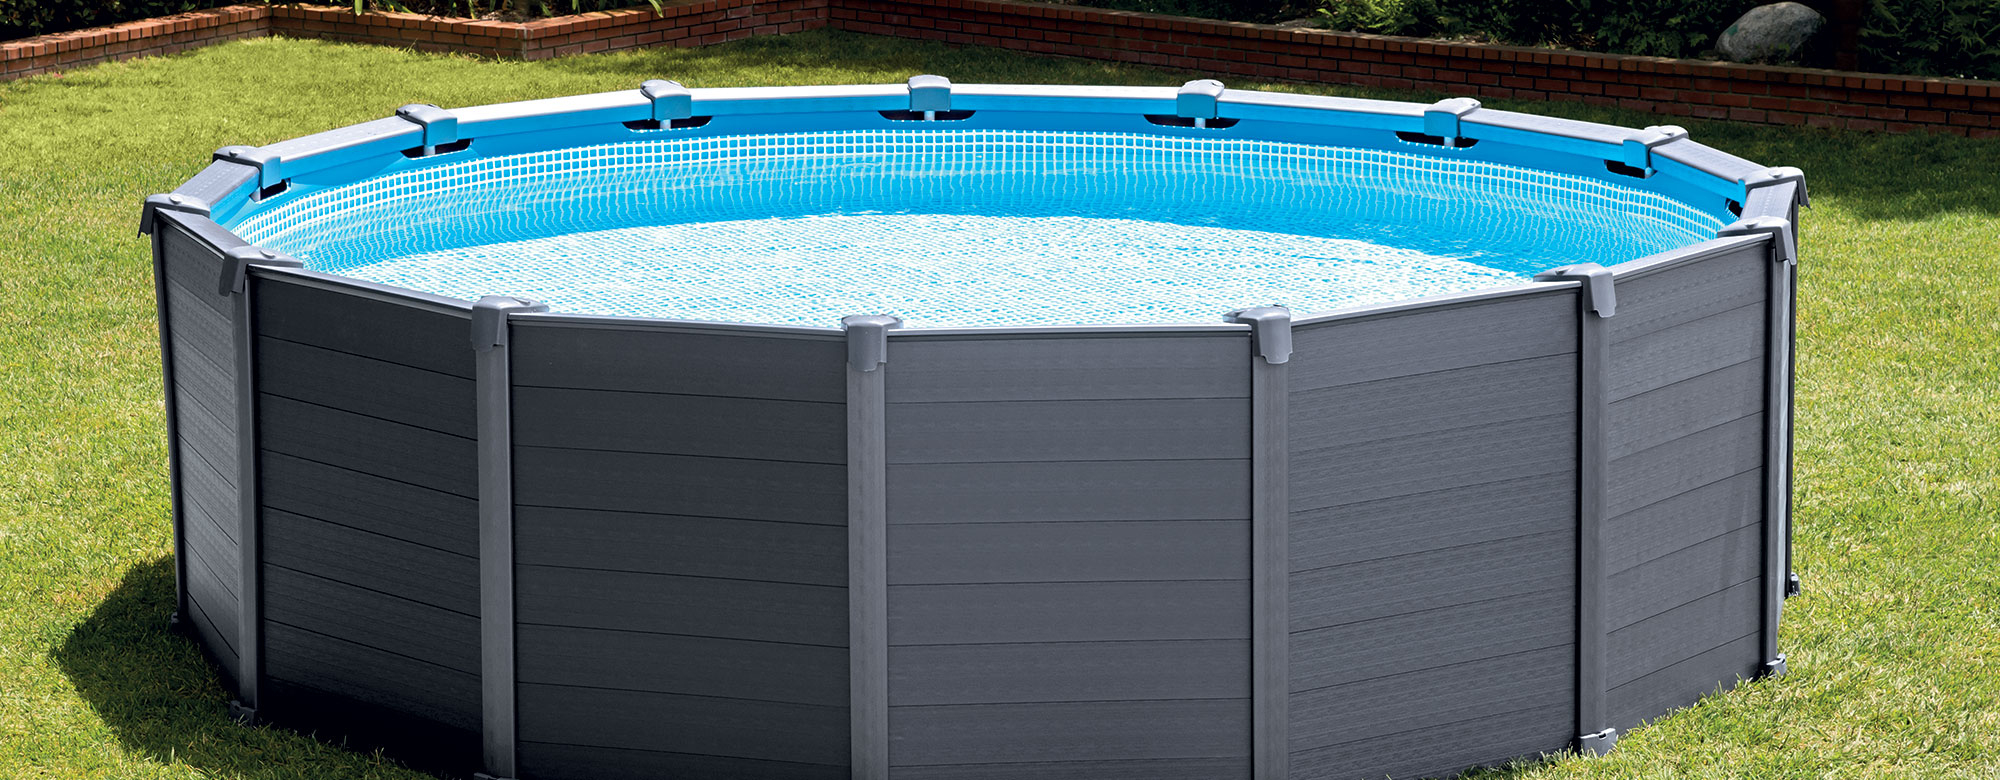 Piscine Graphite Intex Ø4,78 X 1,24M : Piscines Hors-Sol ... serapportantà Intex Graphite 4.78